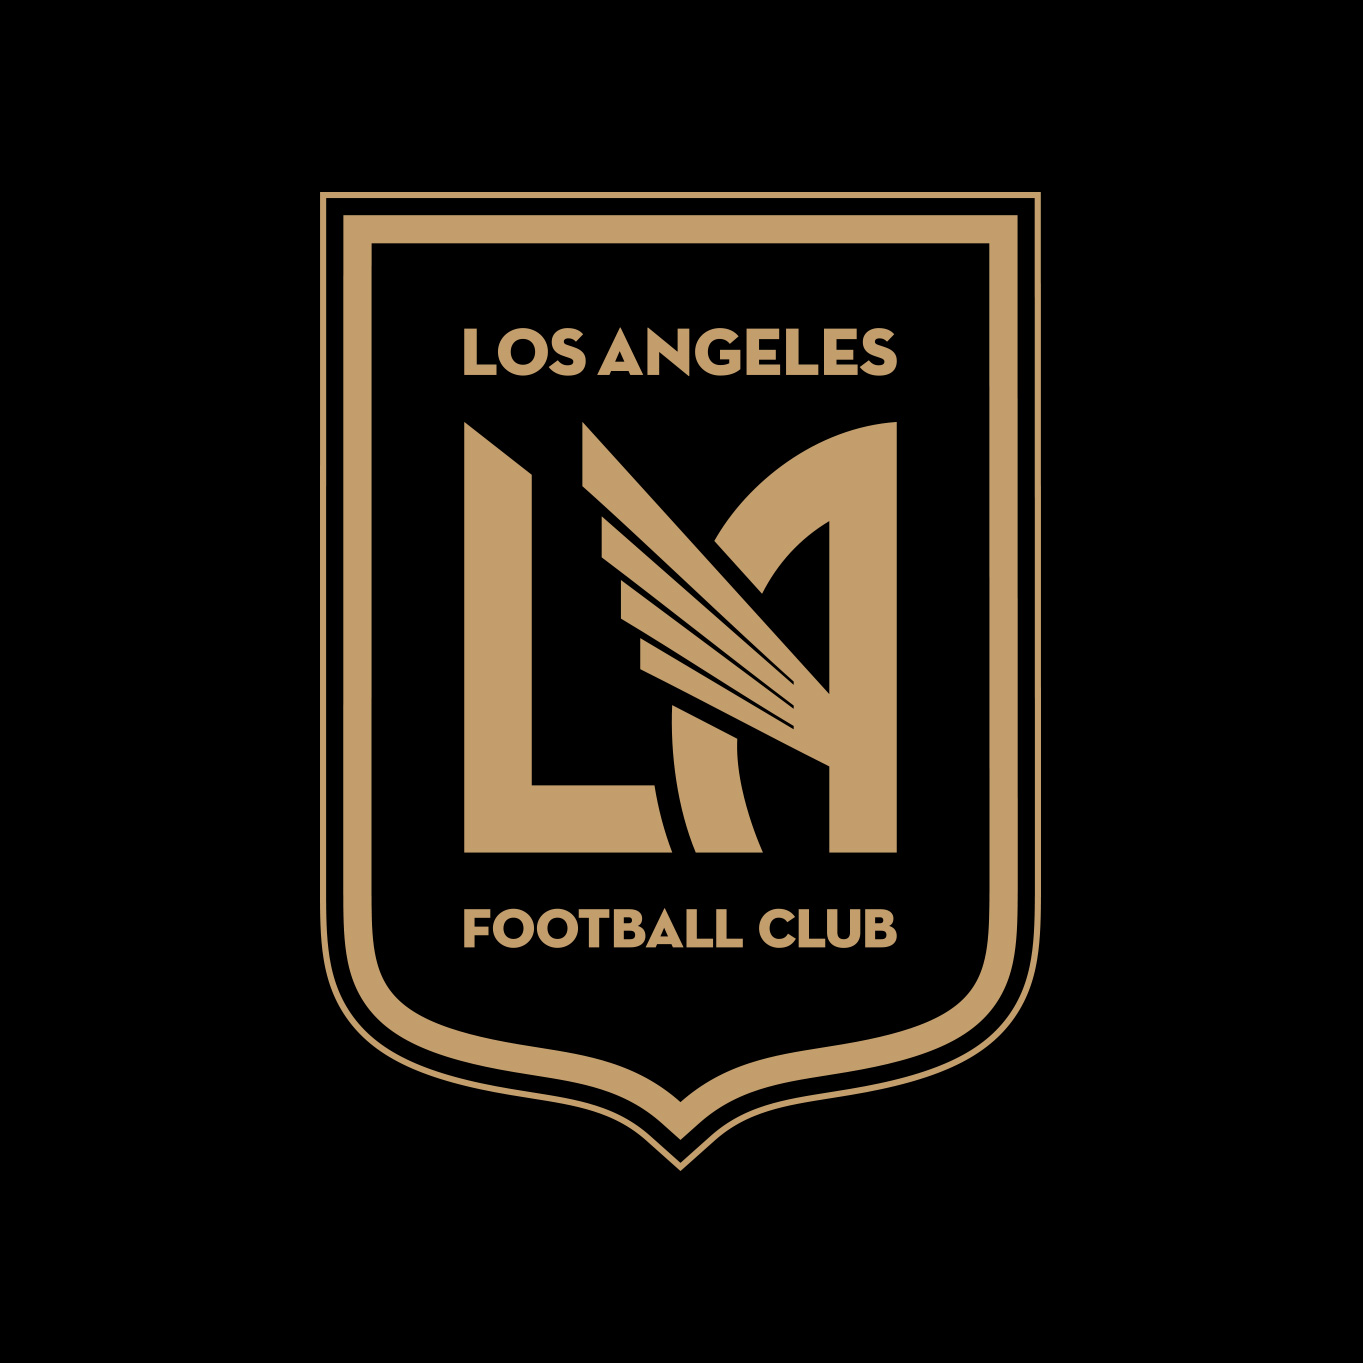 LAFC Designer, LAFC Logo, Matthew Wolff Design, Soccer, Football, Crest, Badge, Logo, Los Angeles FC, Club, Los Angeles Football Club, MLS, Adidas, Artist, Graphic Designer, Branding